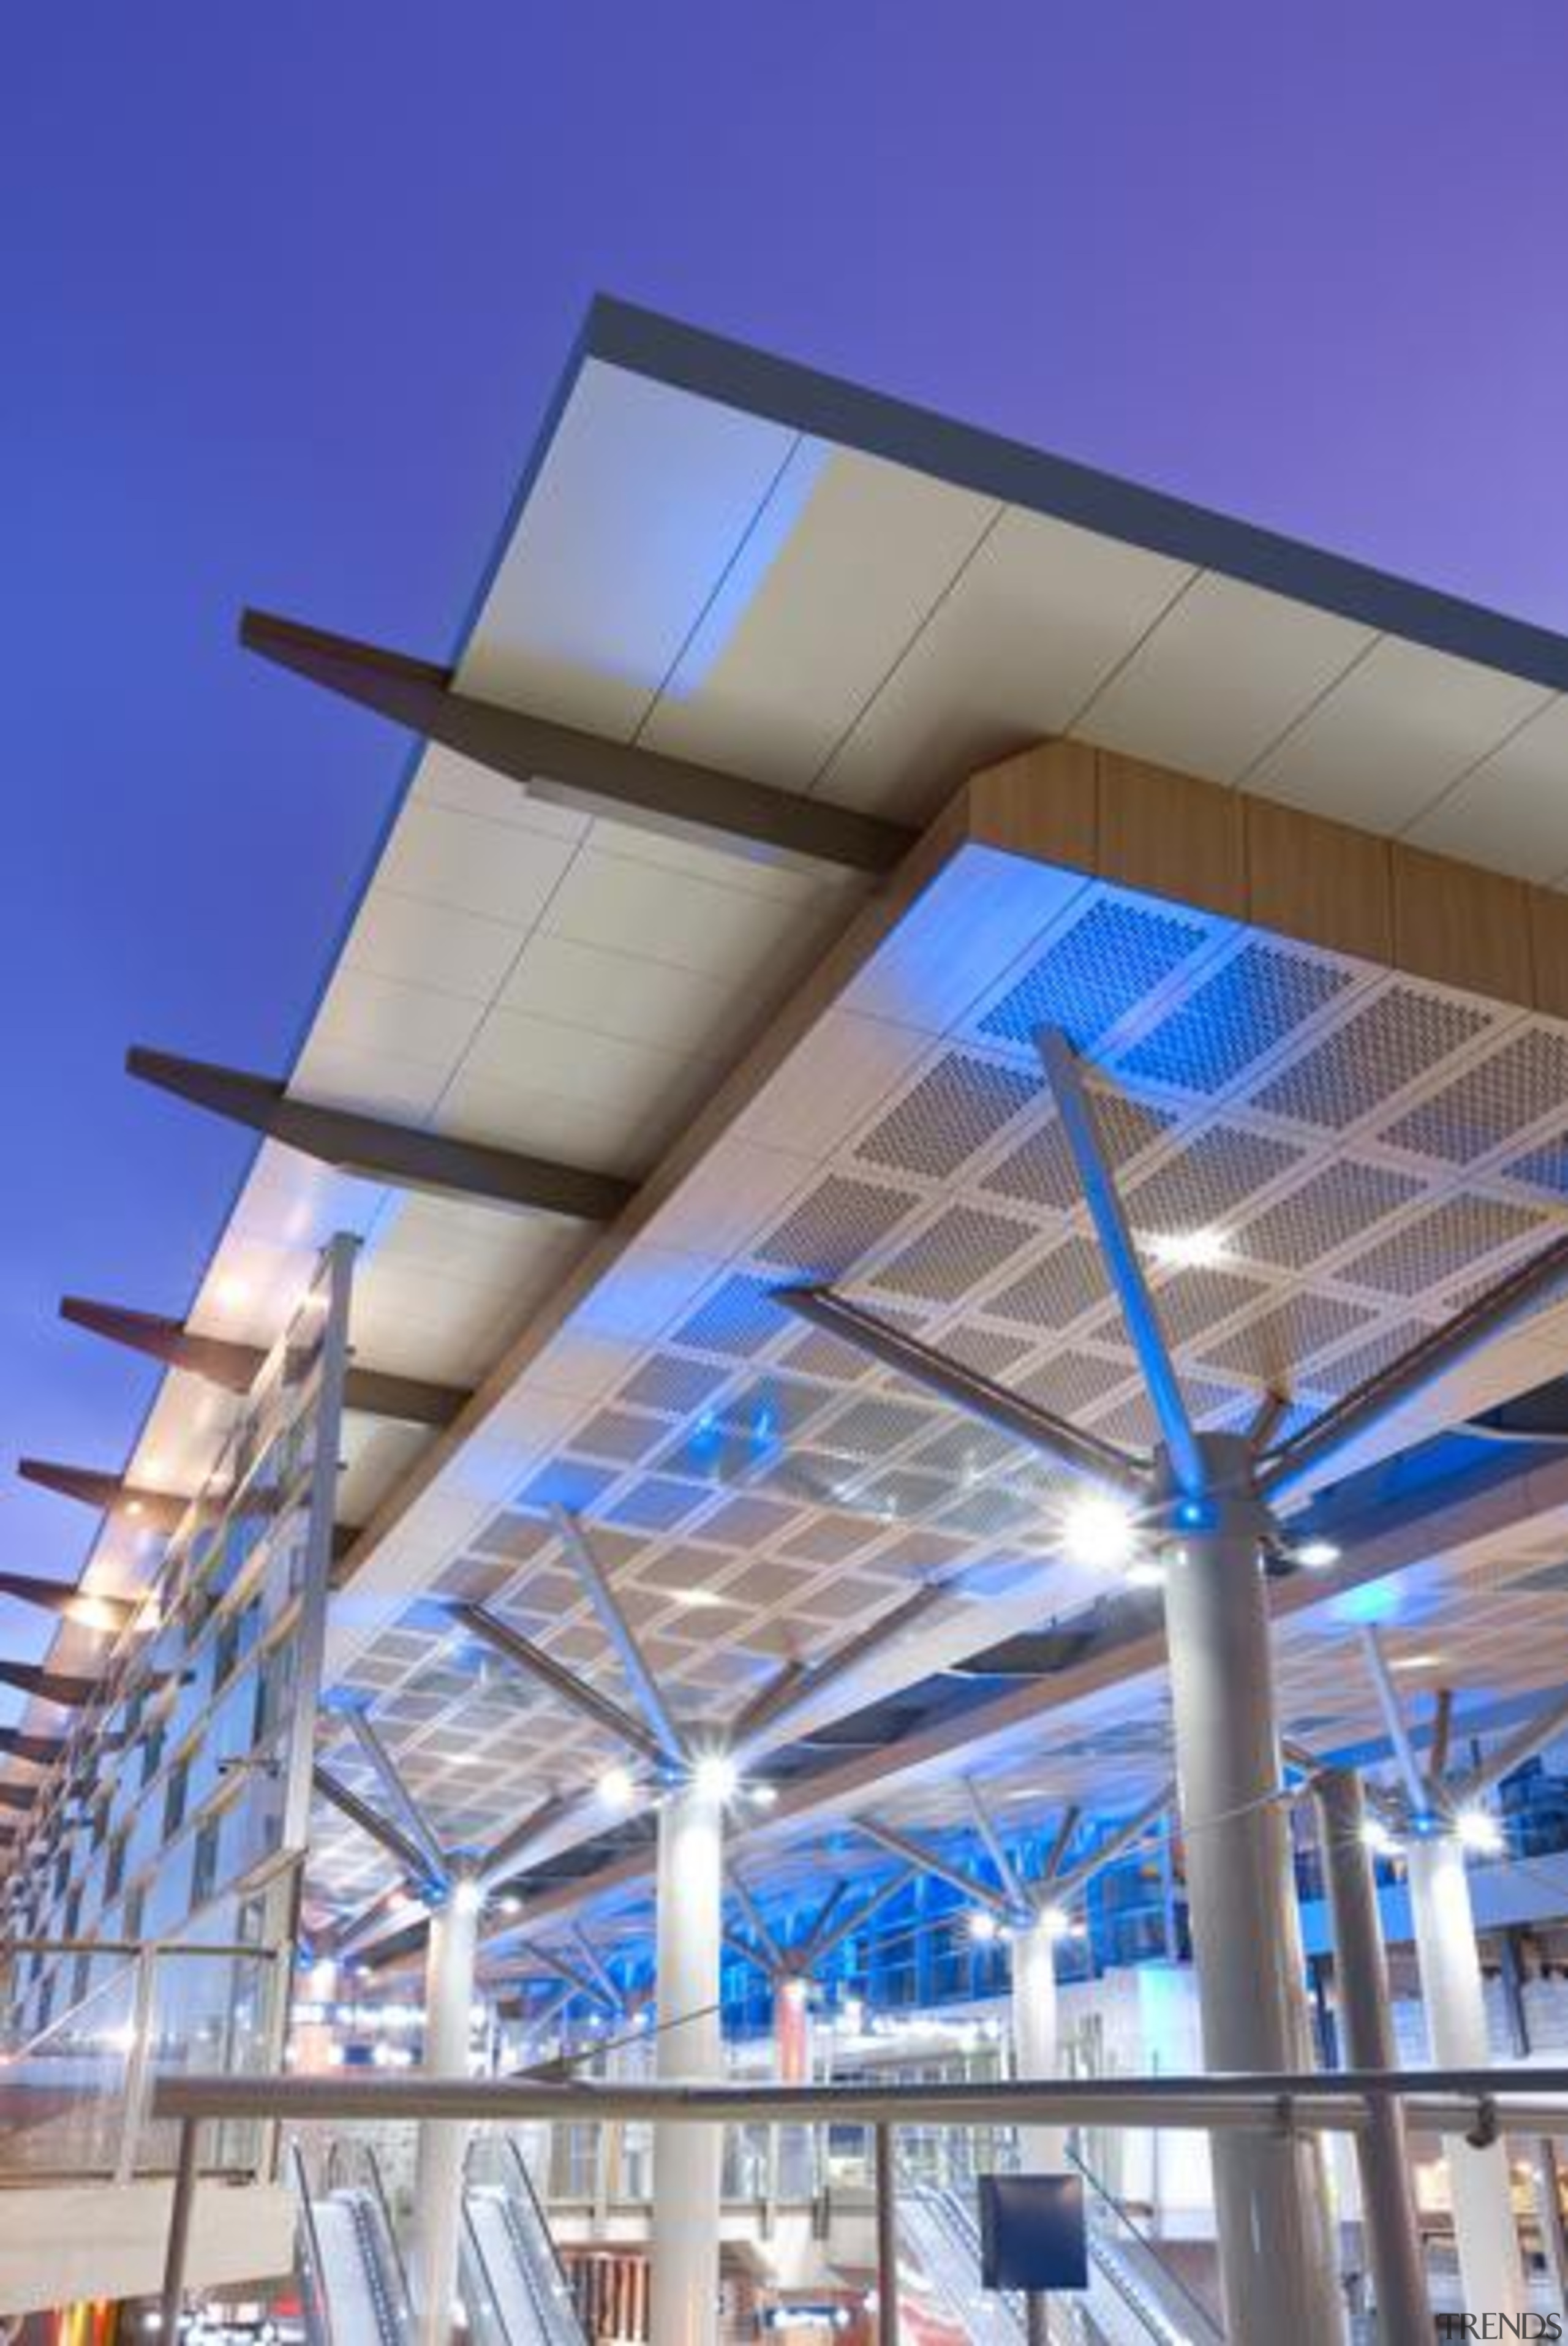 ExoTec Facade Panel - ExoTec Facade Panel - architecture, building, ceiling, commercial building, convention center, corporate headquarters, daylighting, lighting, mixed use, roof, sky, structure, gray, blue